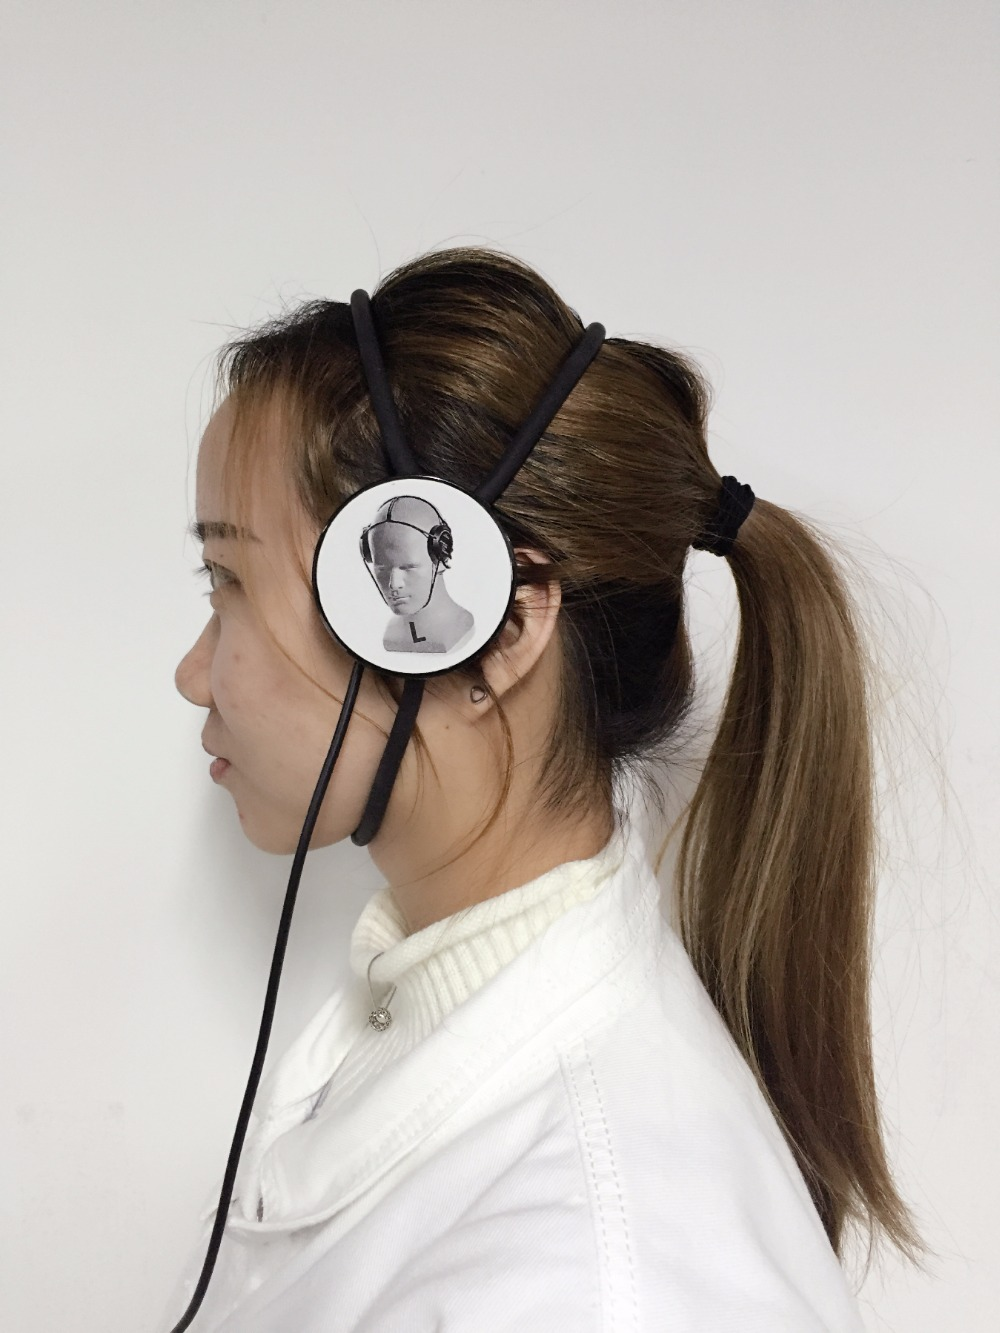 New arrival line style headphone for NLS machinesNew arrival line style headphone for NLS machines